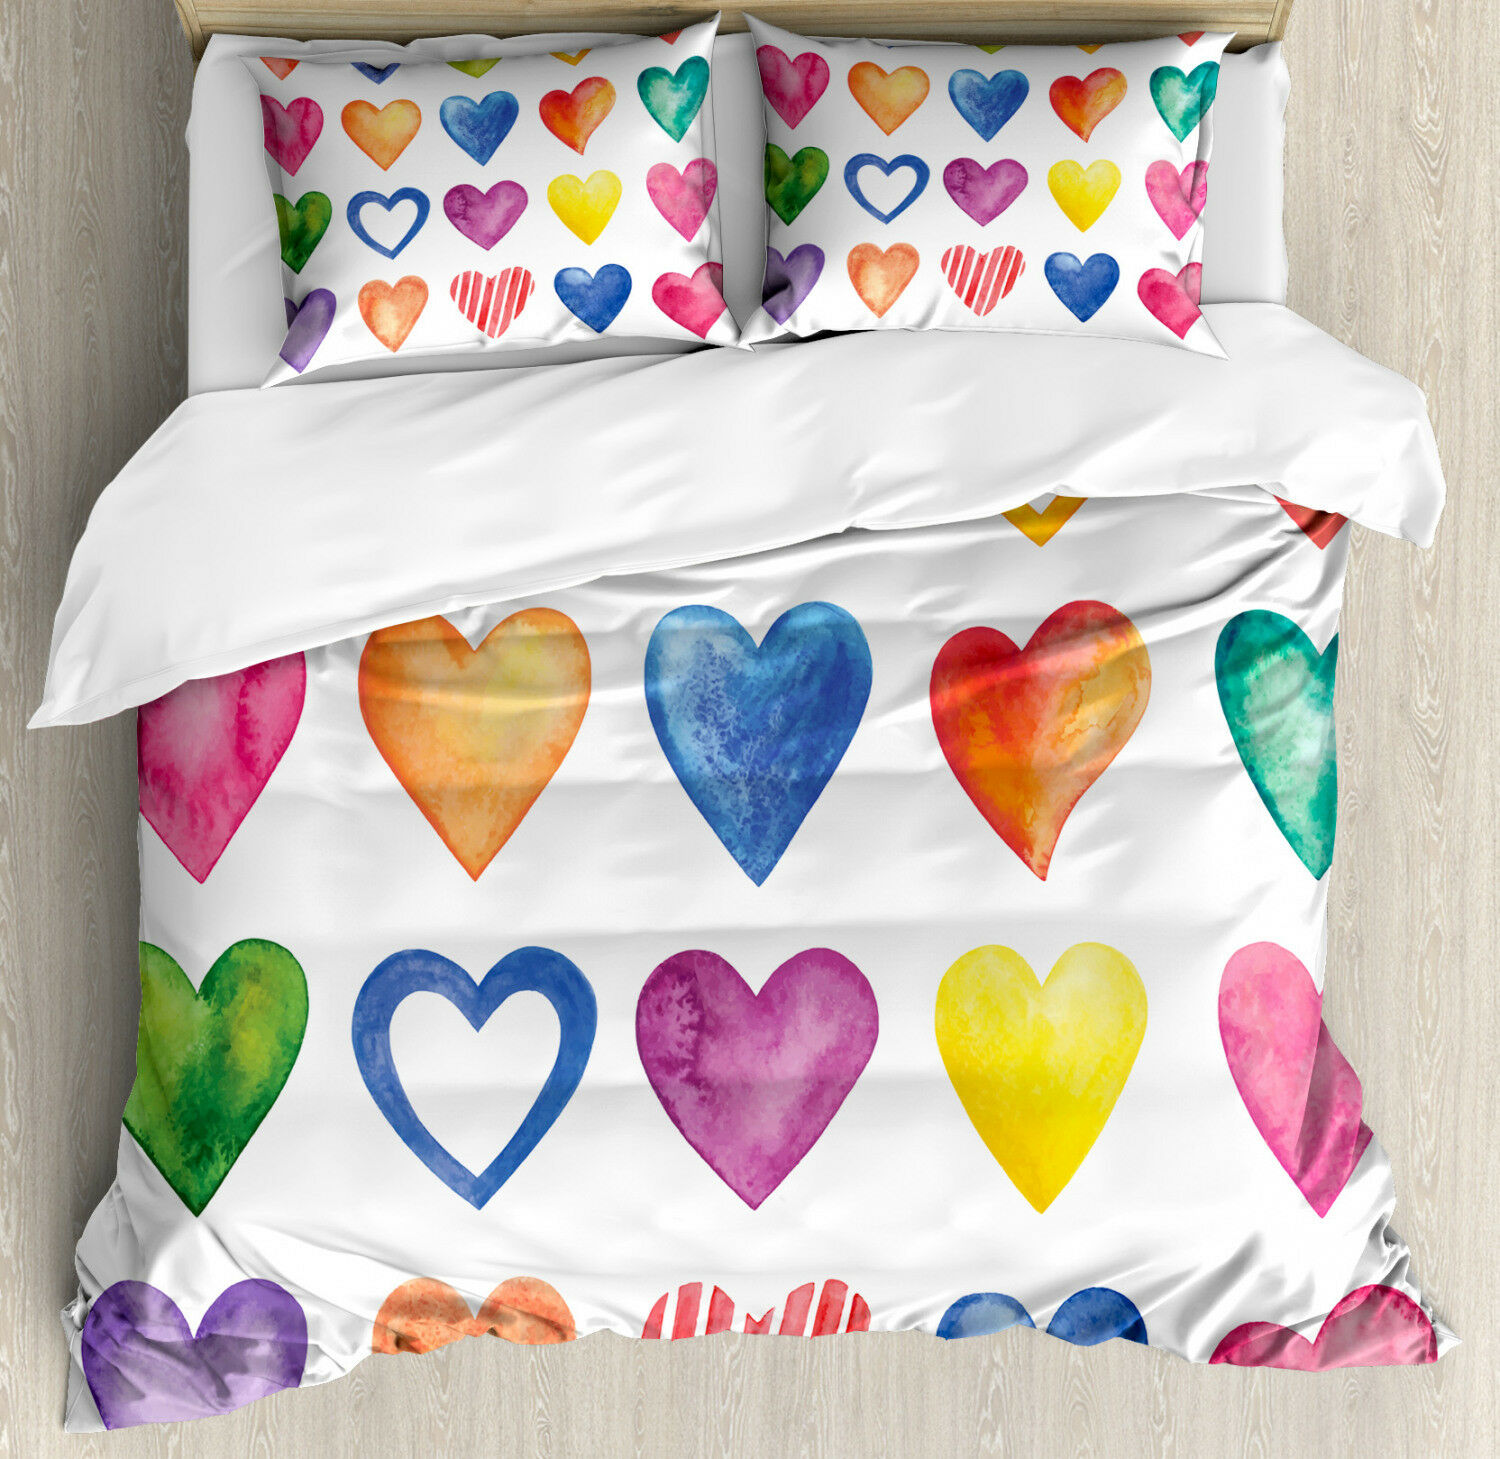 Grunge Duvet Cover Set with Pillow Shams Watercolor Heart Romance Print